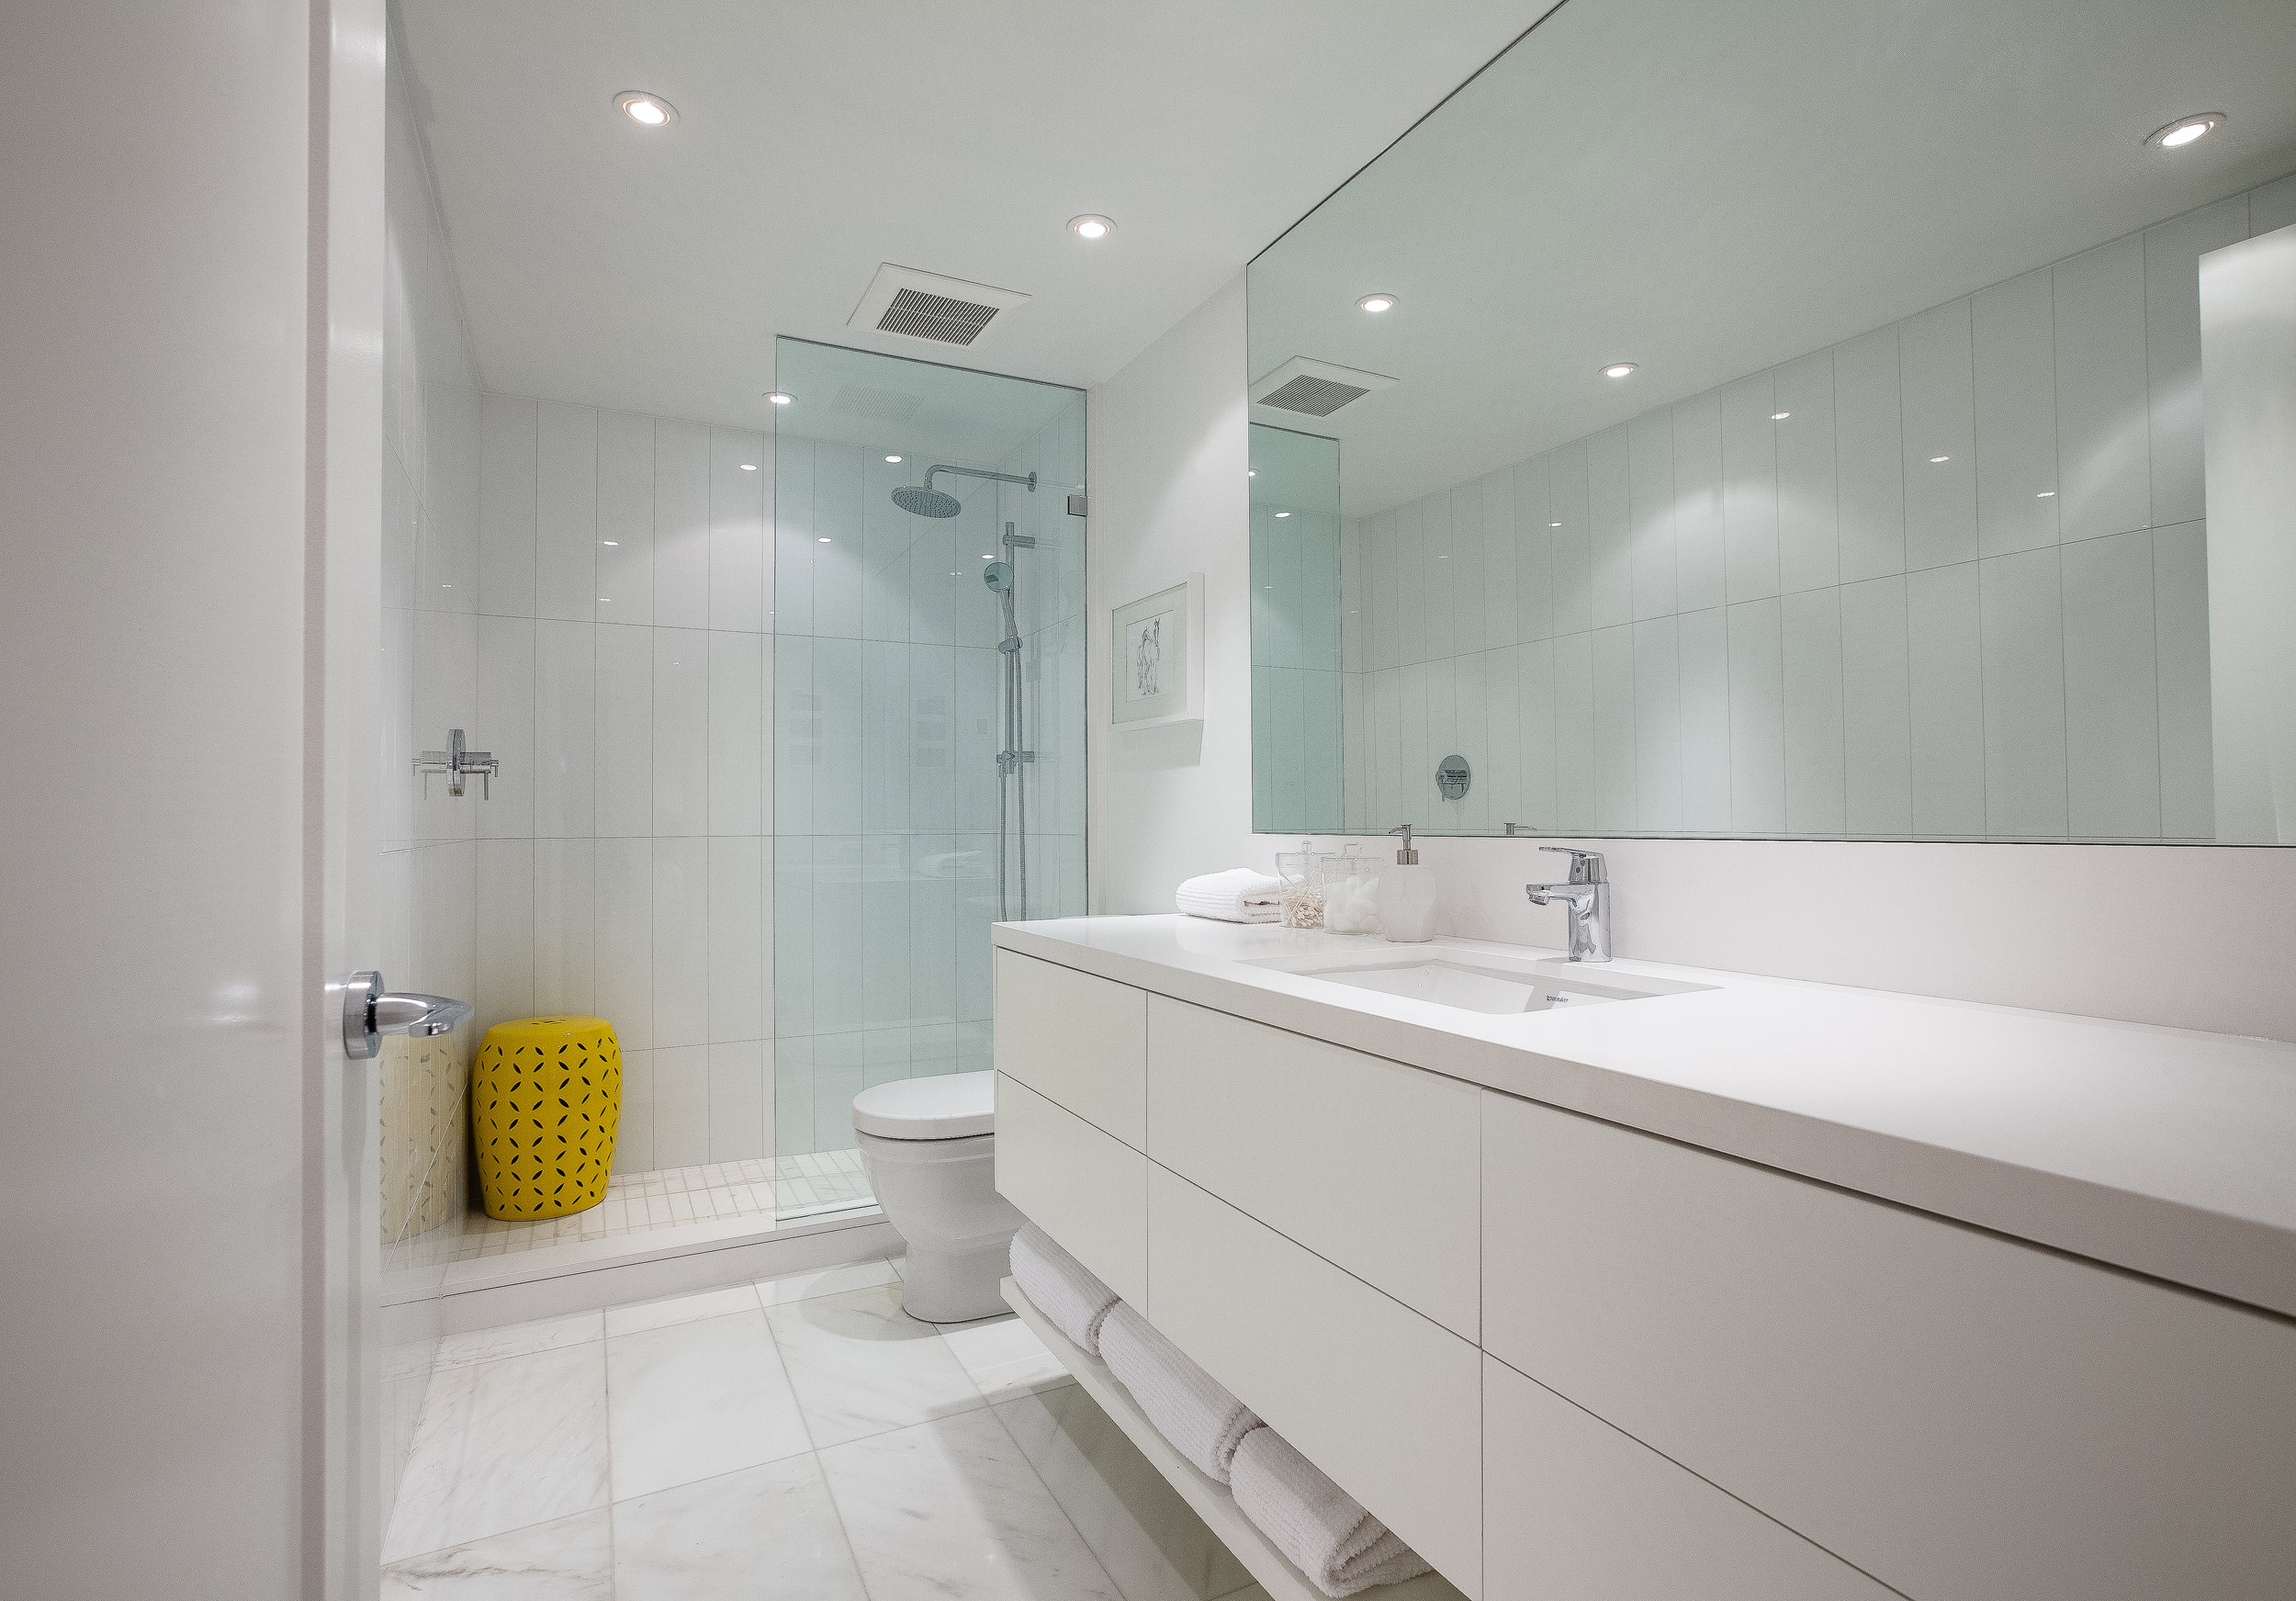 Bathroom design photograph